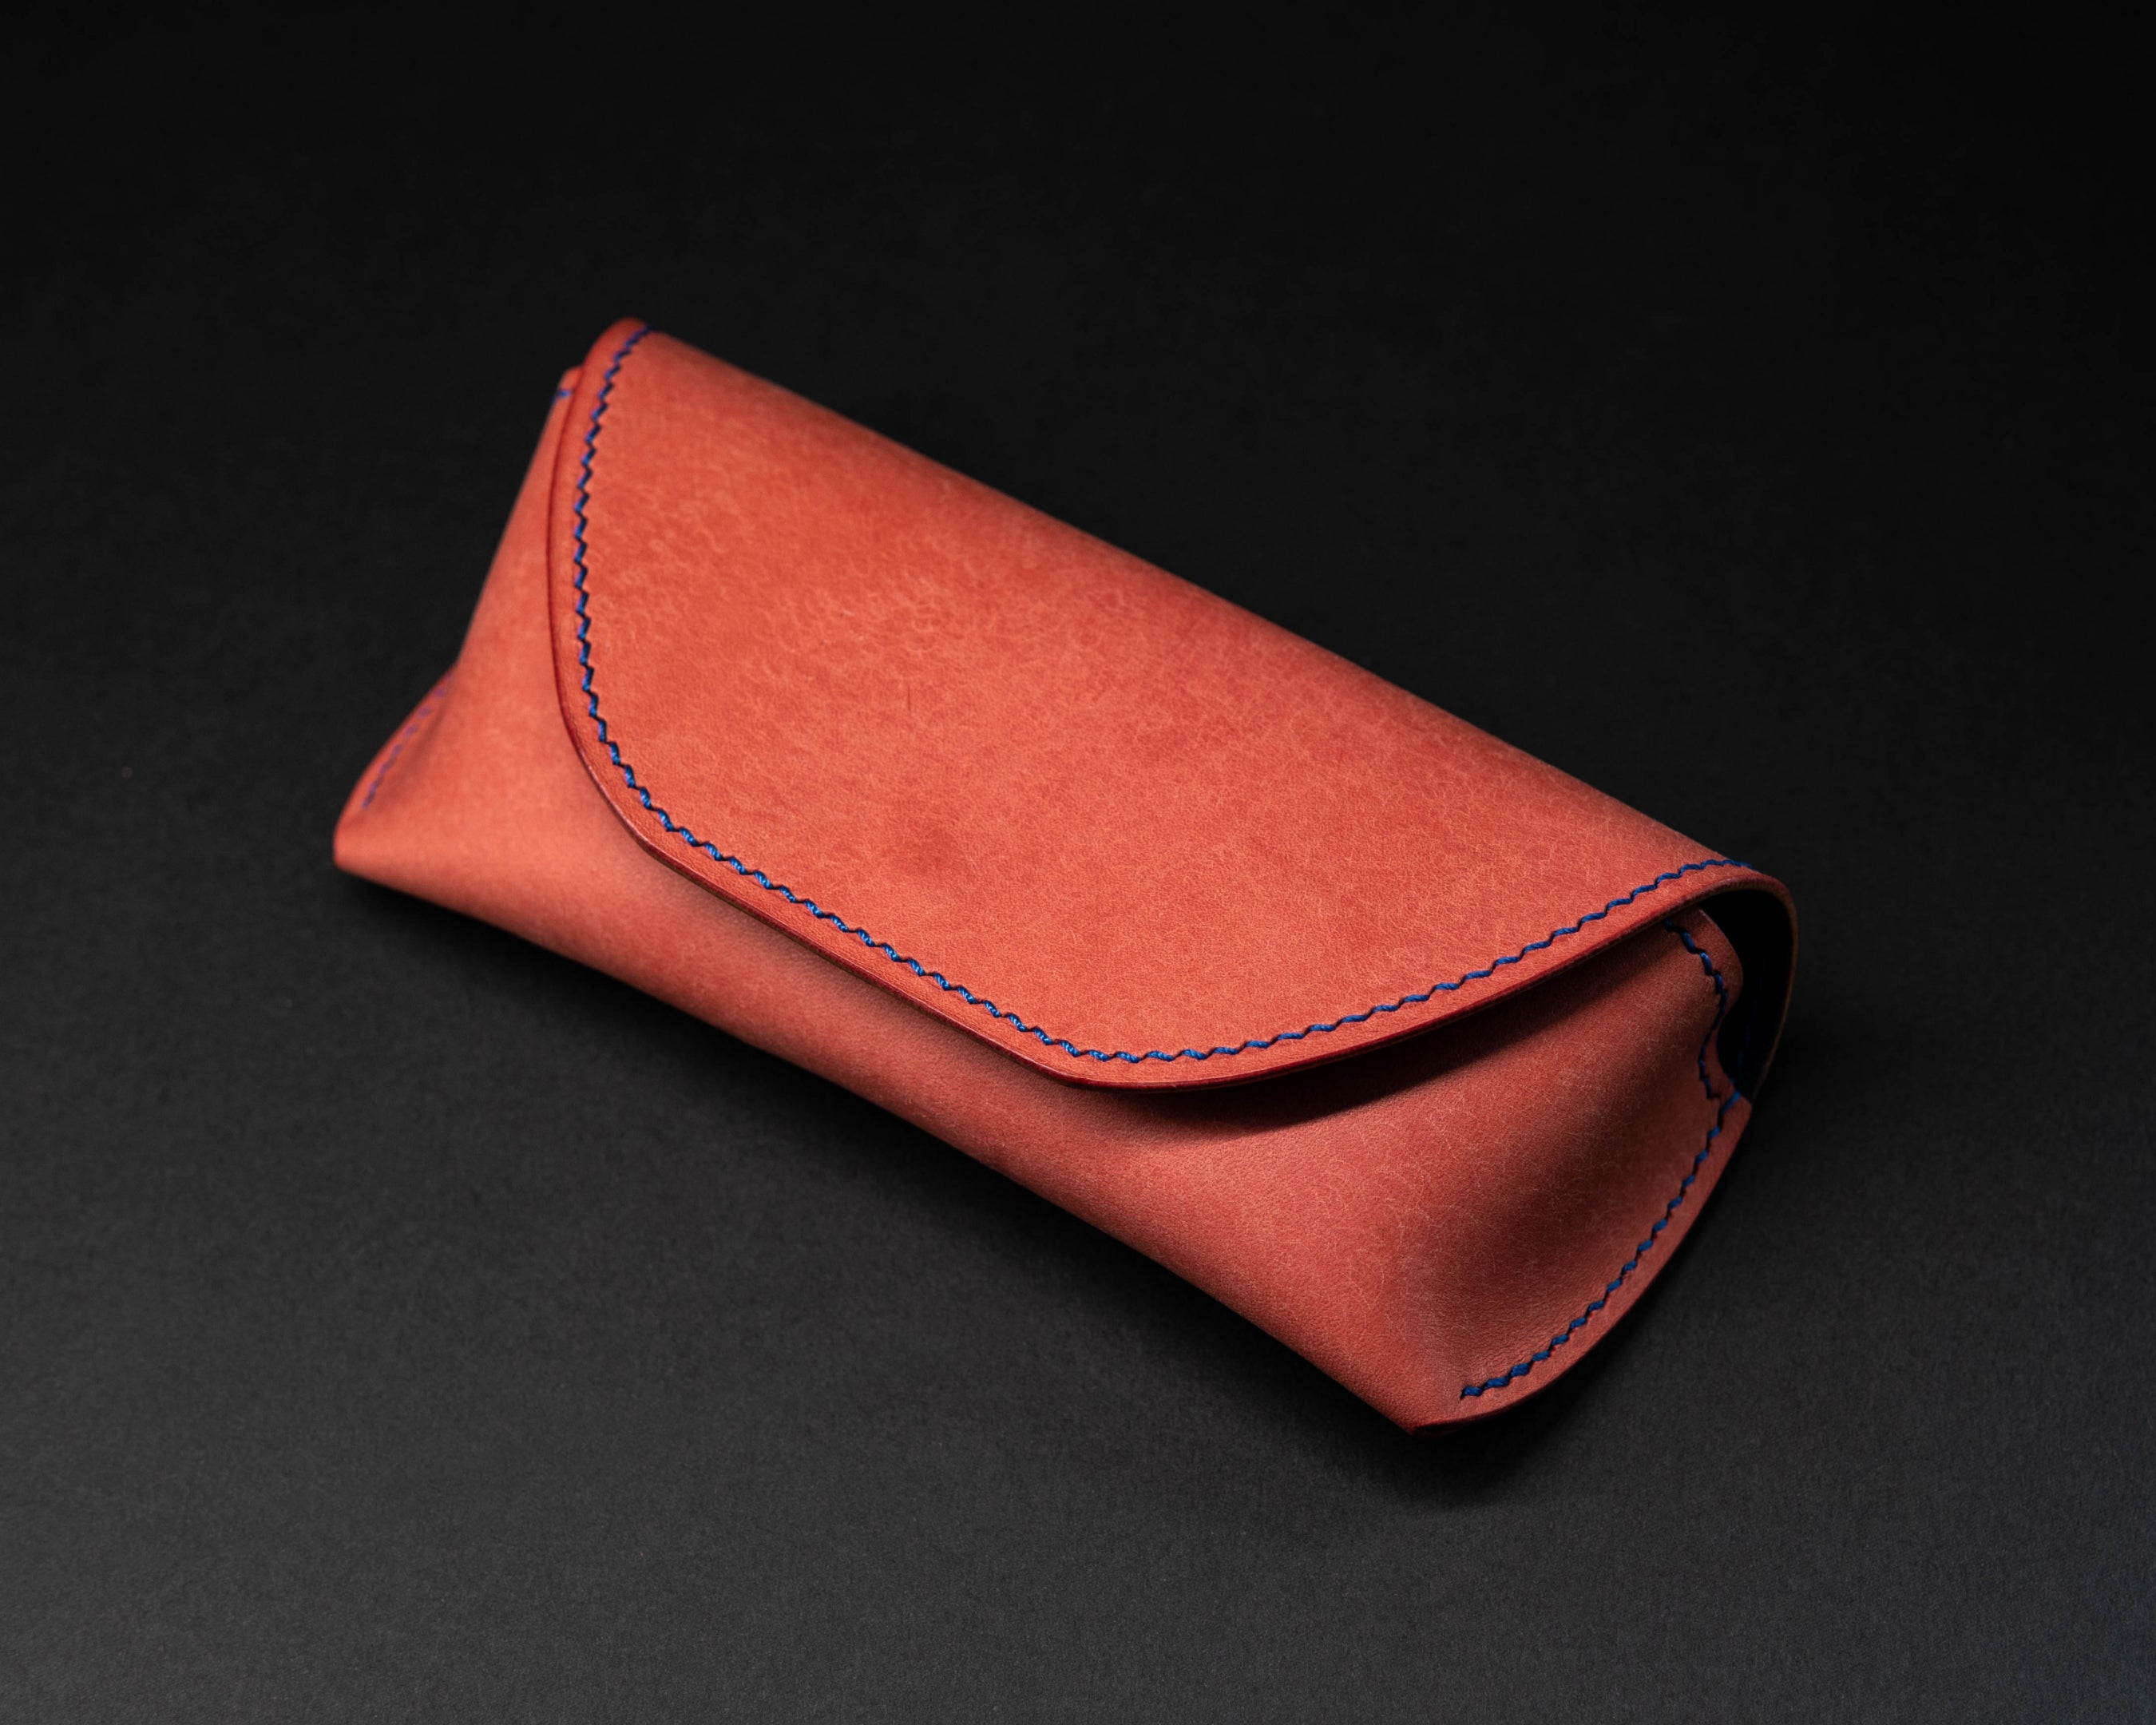 Accessories: Glasses Case